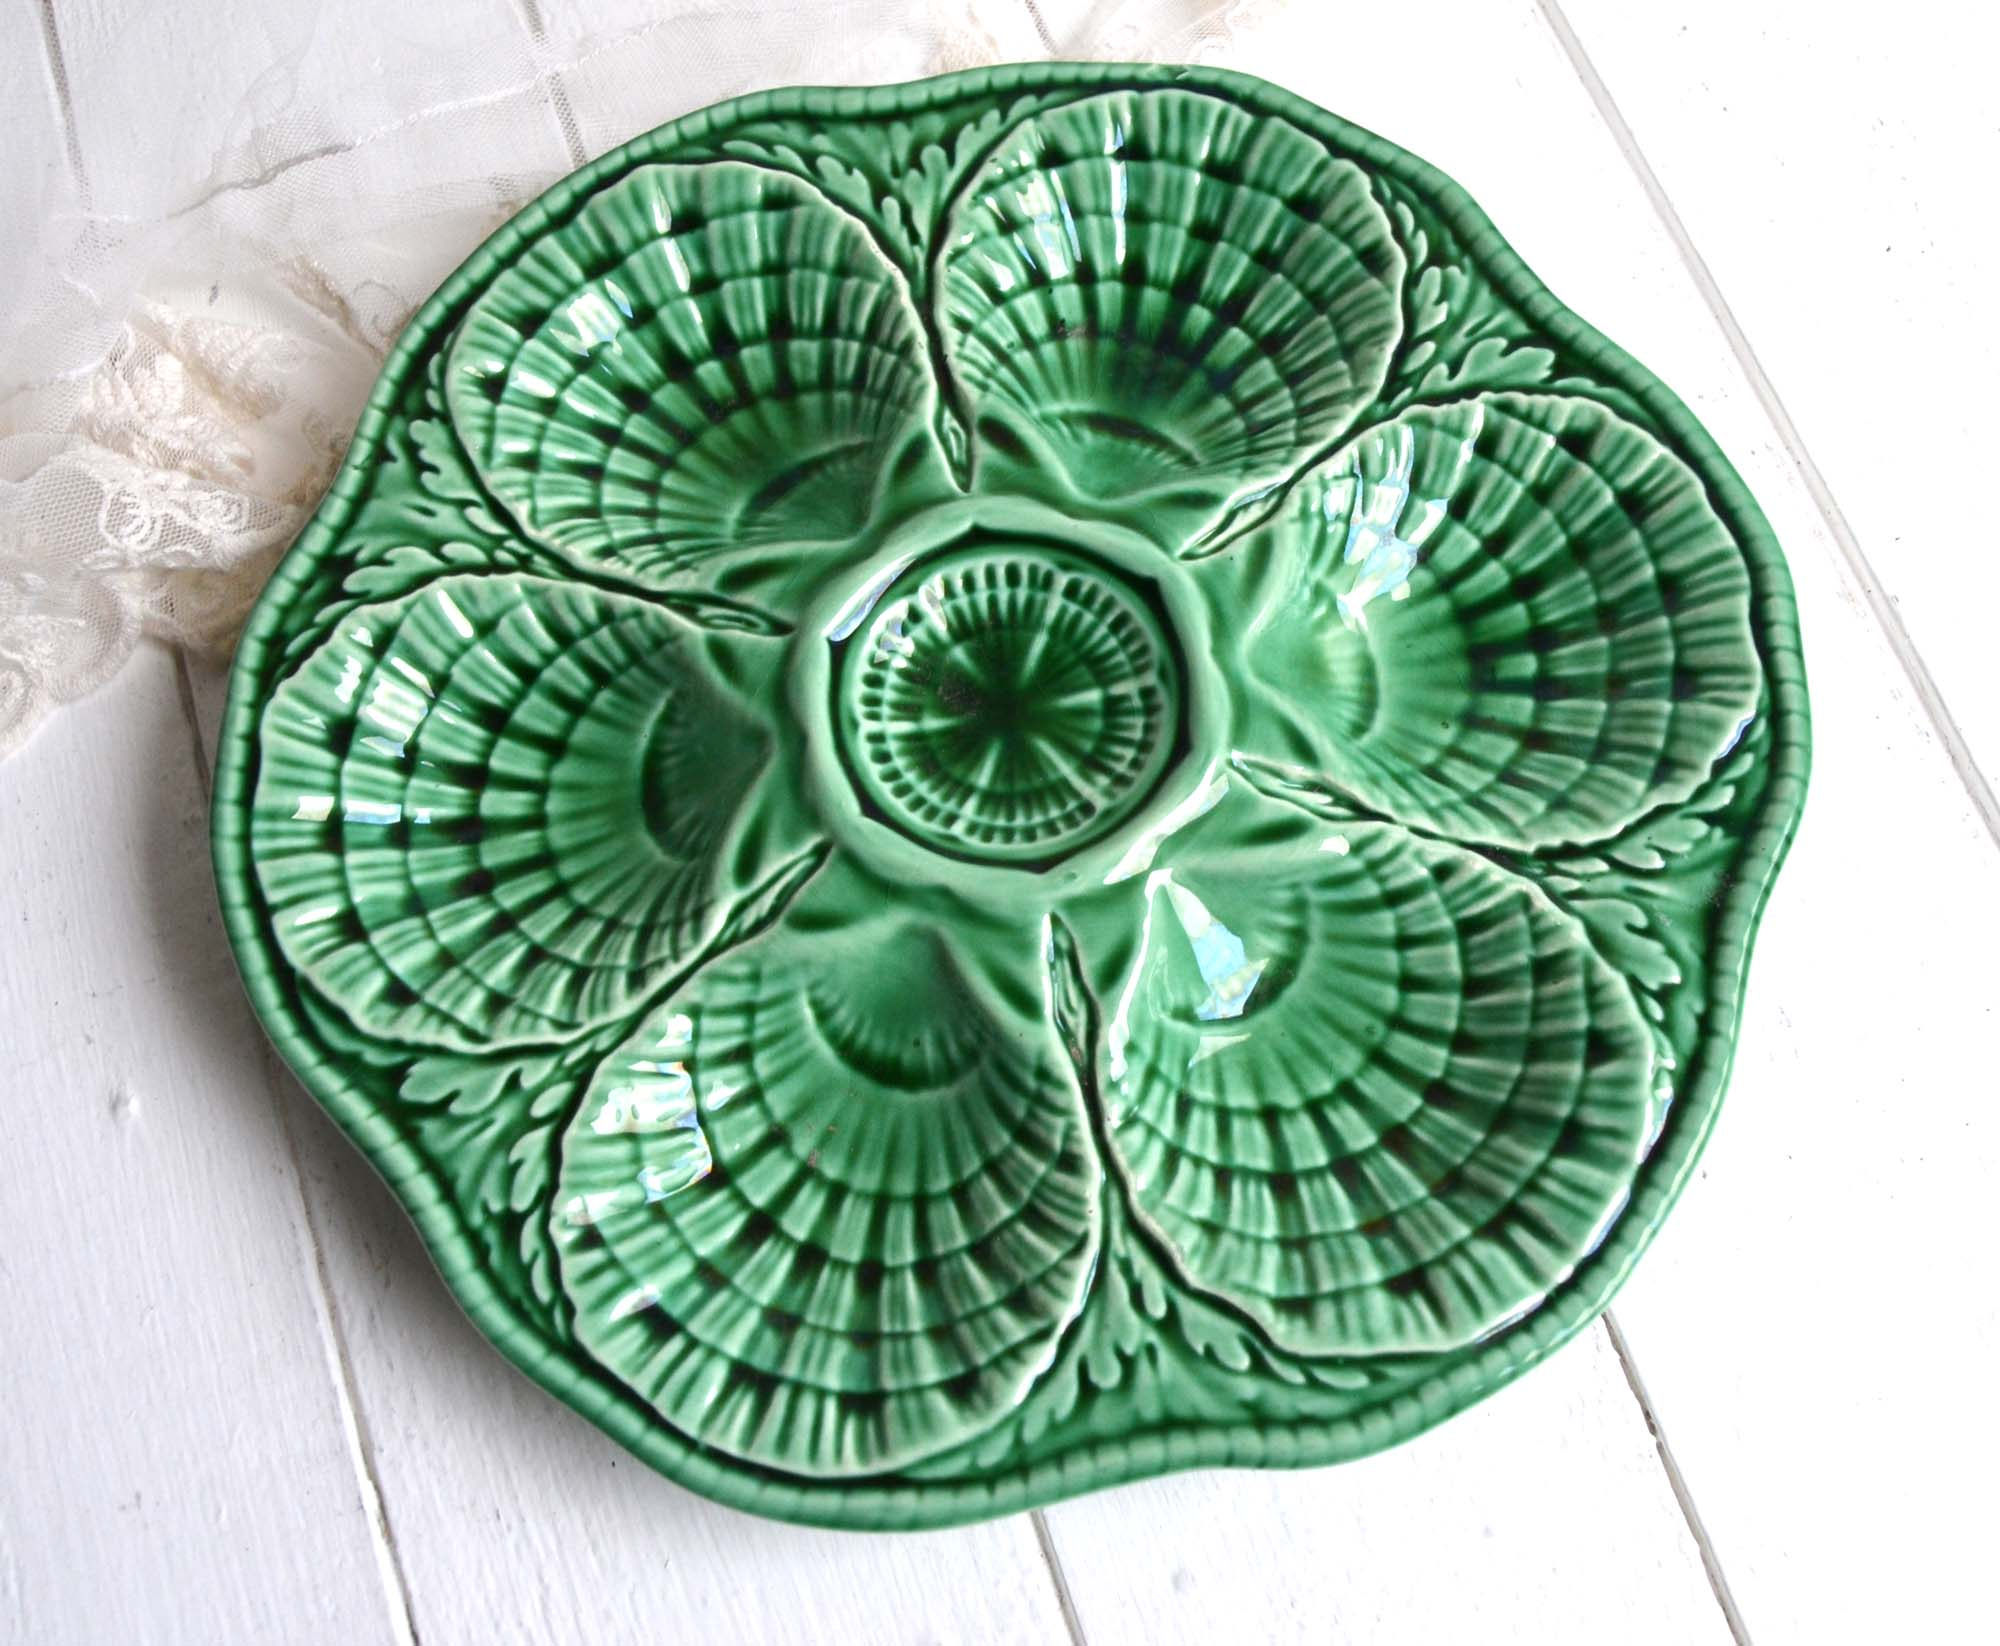 1930s vintage majolica produced by Serreguemines (France). Source:Shabby French Vintage on Etsy.